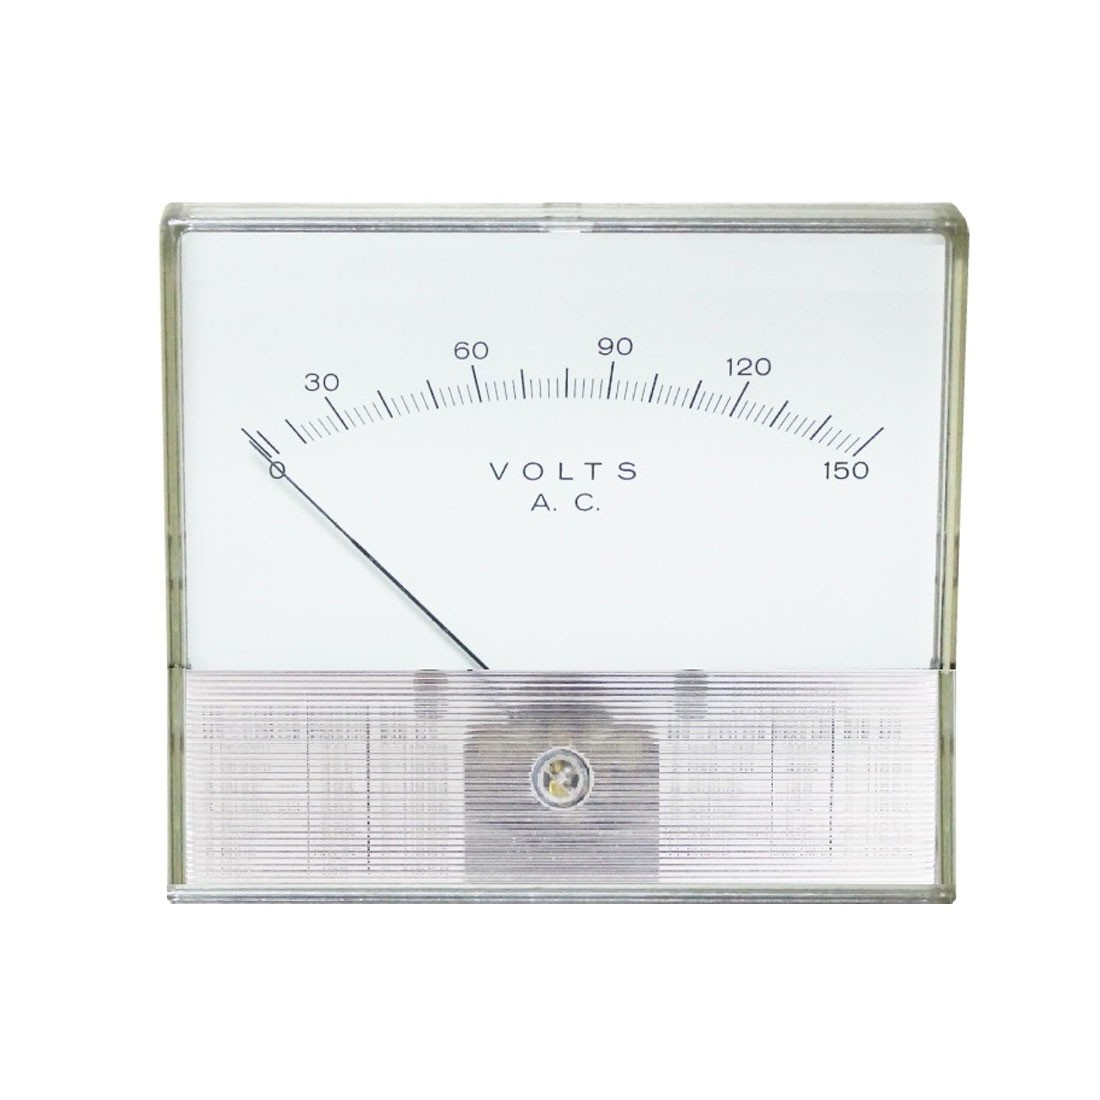 2046R Rectified AC Analog Panel Meters - Standart With Clear Band